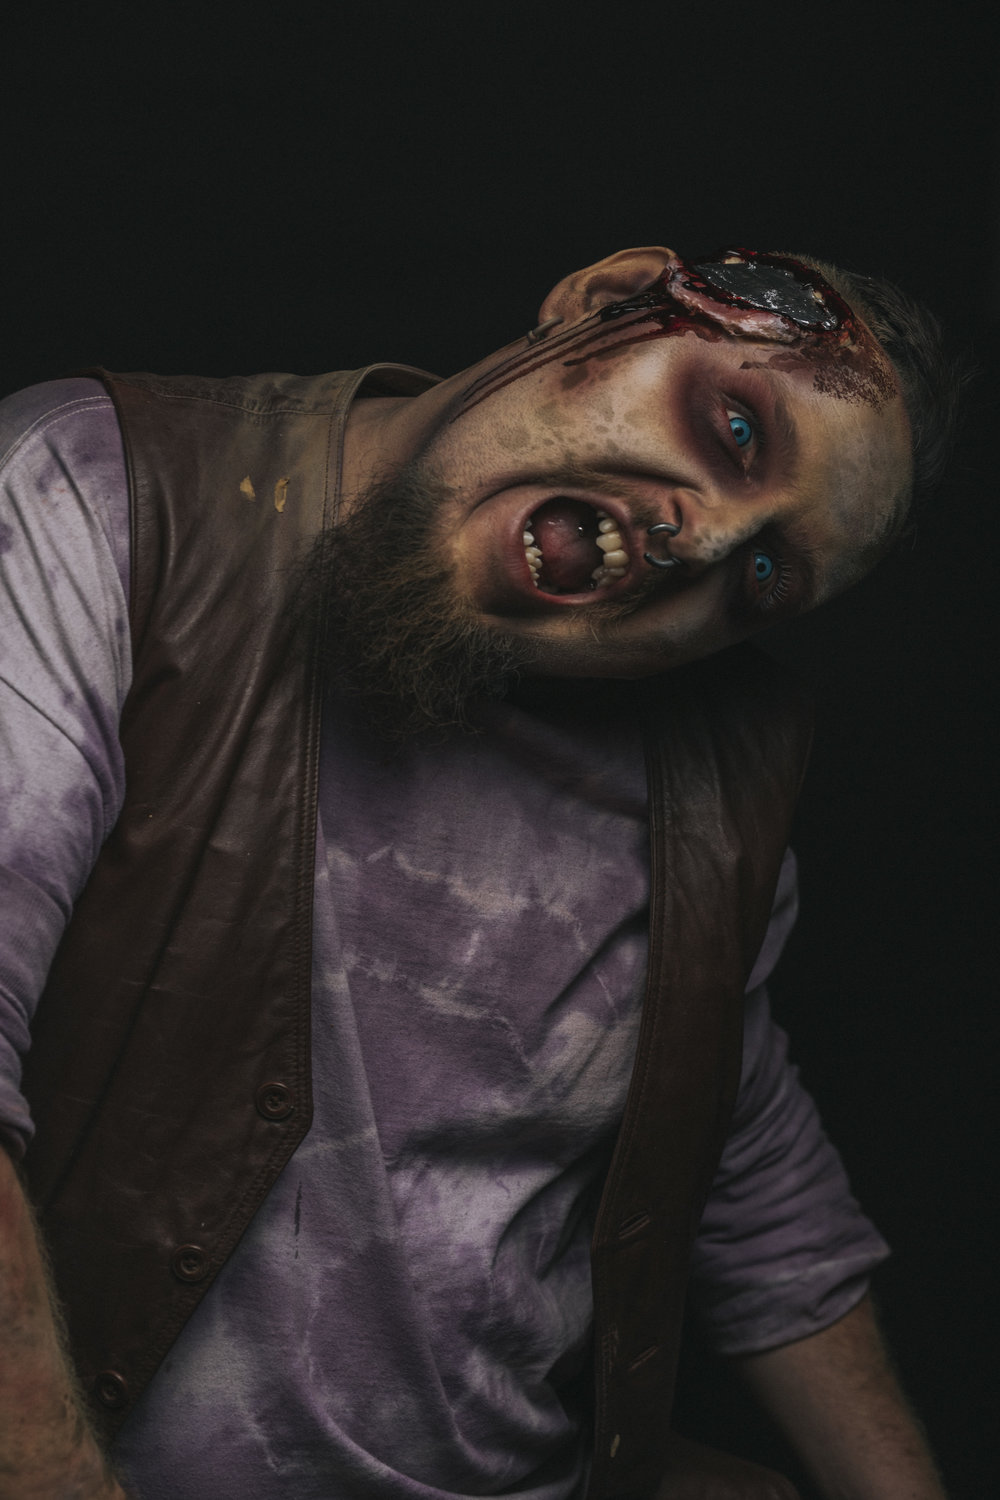 I have of course seen the Texas Chainsaw Massacre movies but I will admit to not knowing a ton about the character of Chop Top. With that said I love the way he looks. With his exposed metal plate on his head he's gets a lot of comments on the makeup.